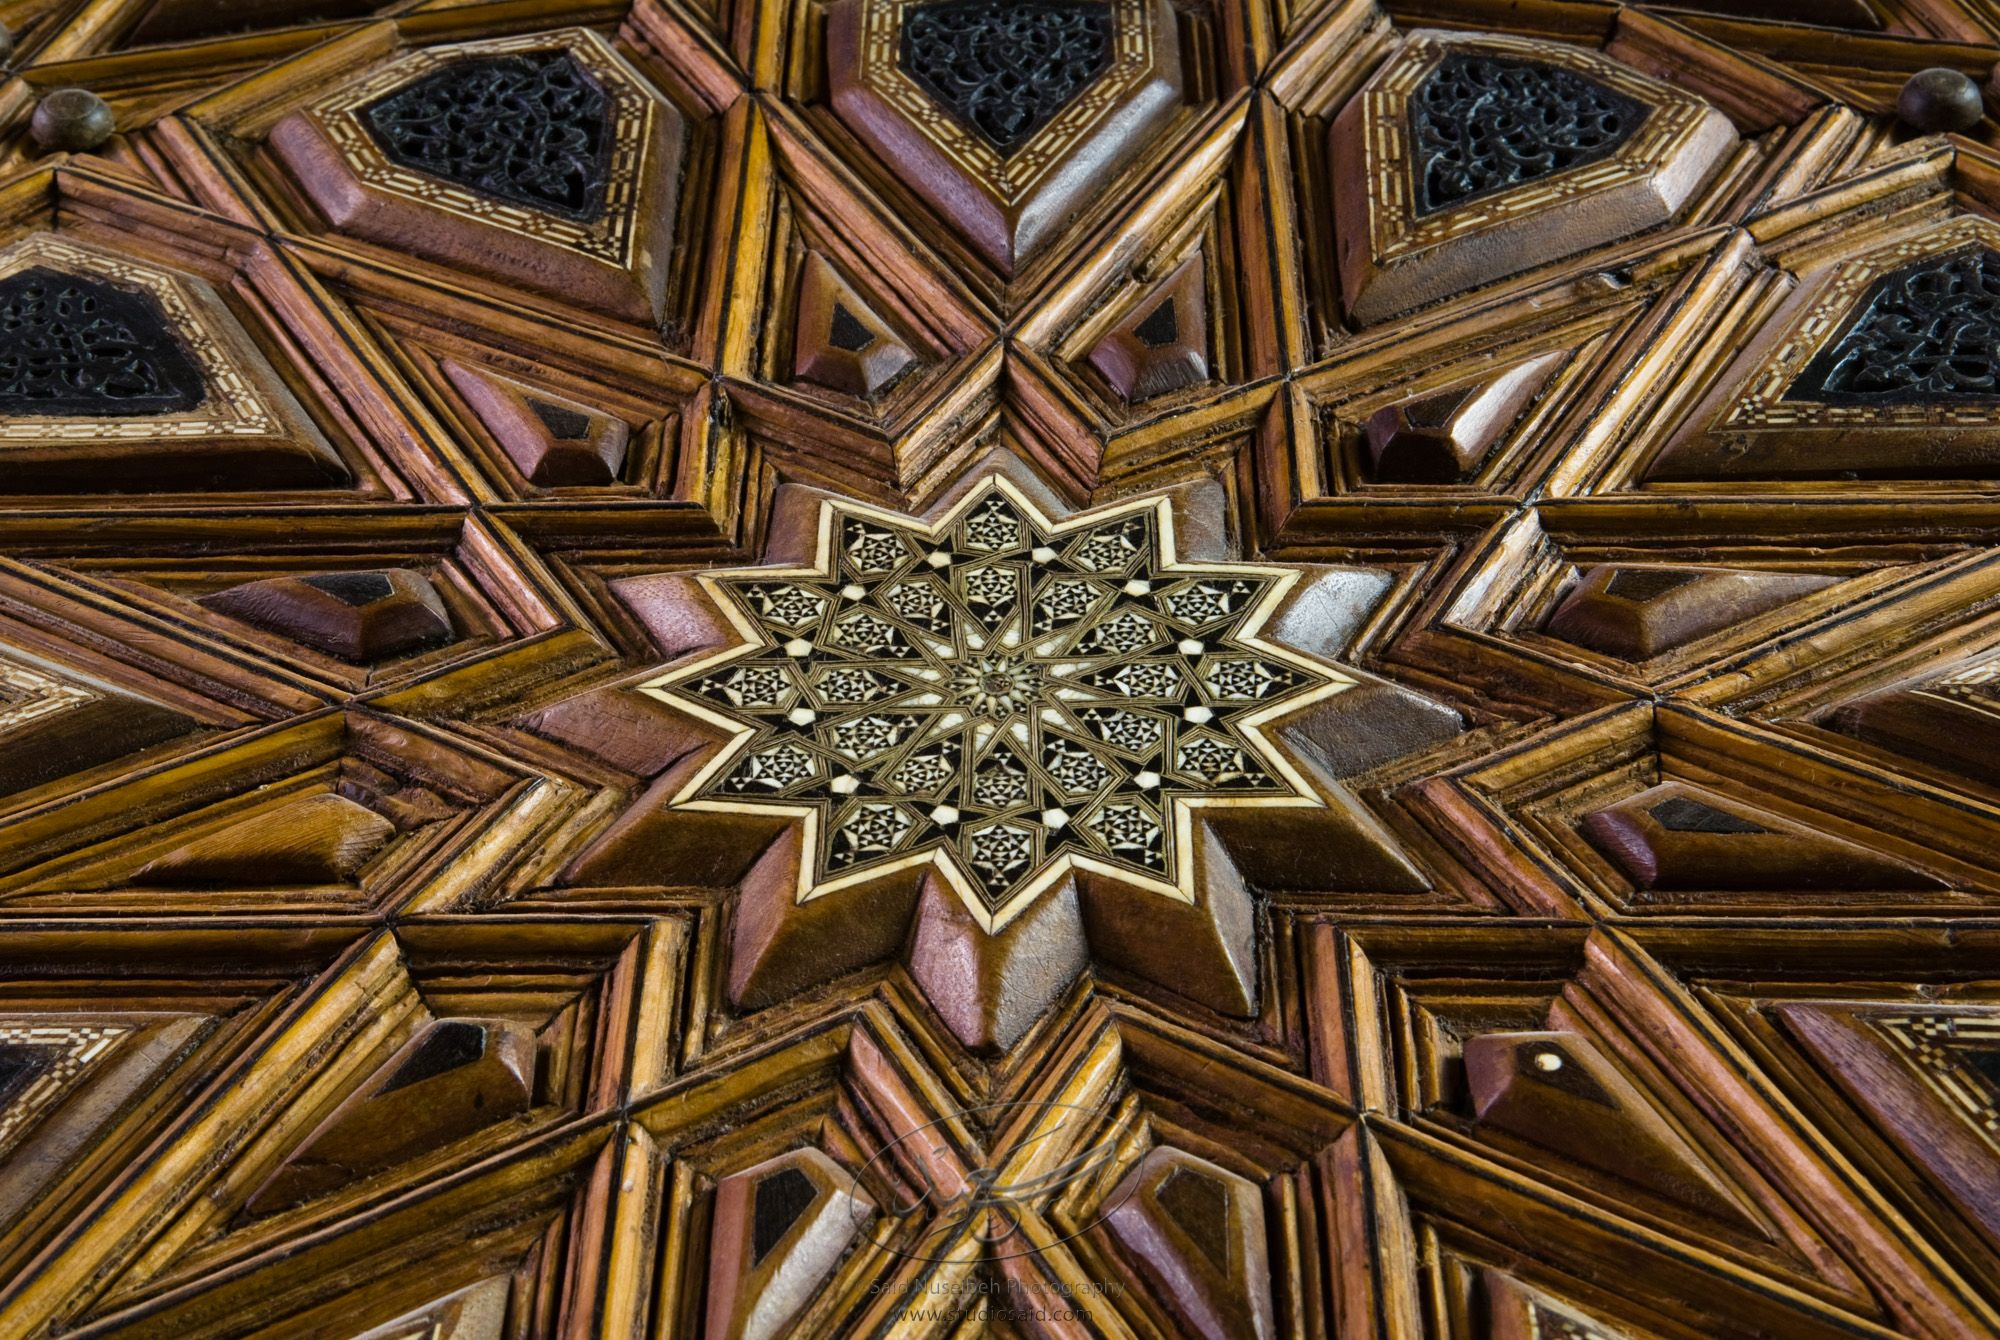 """Radiating Dodecagon. Minbar, Carved Woodwork and Inlay Detail""The late-13th / early-14th c. Mamluk minbar, or pulpit, of Sultan al-Nasir Muhammad, the ninth Mamluk Sultan from Cairo and son of Qalawun. The minbar was located in the Umayyad Mosque in Aleppo, Haleb, prior to its damage and disappearance in May 2013."